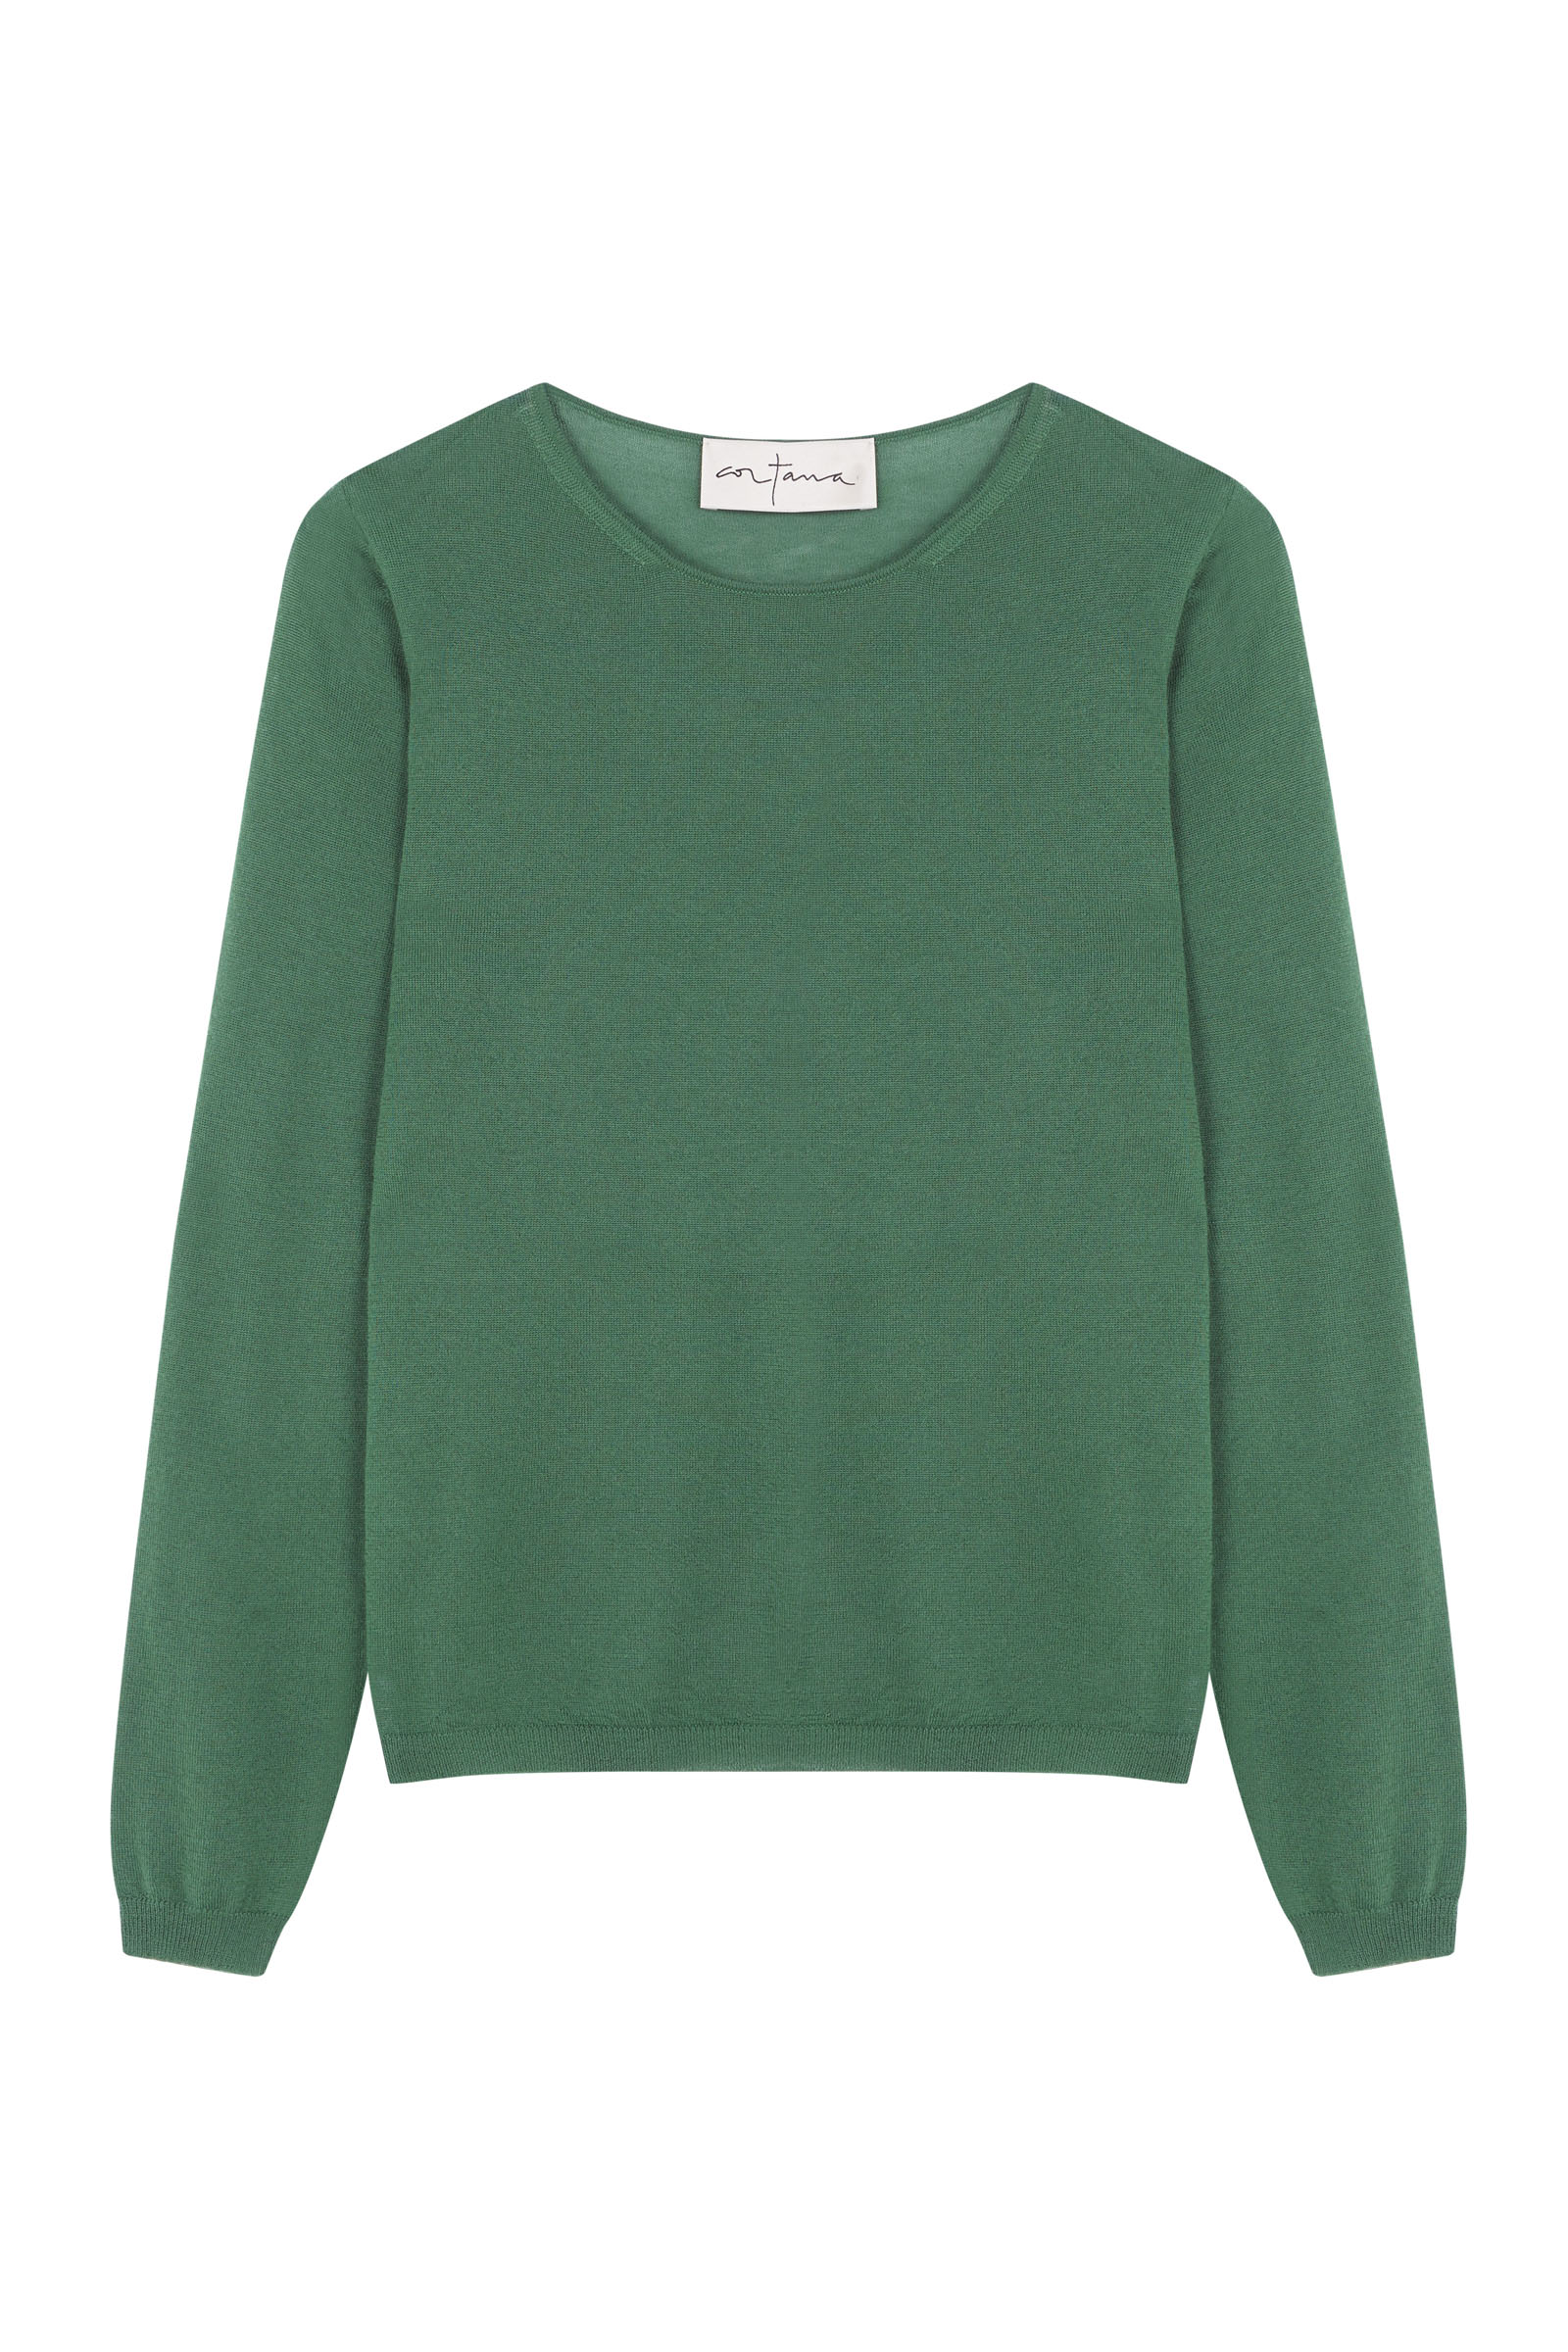 CRISTAL GREEN CASHMERE TOP - Cortana Moda